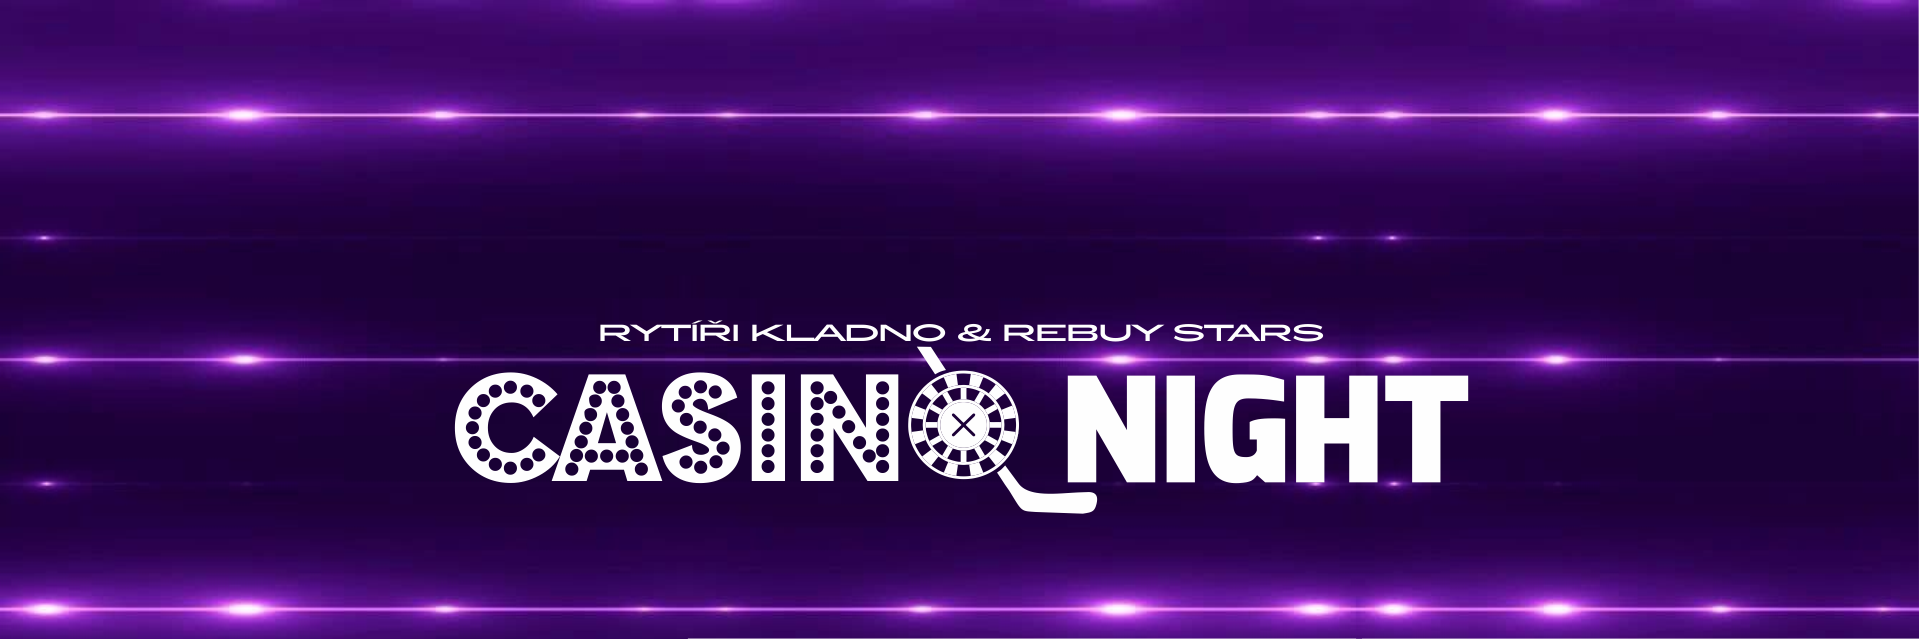 casino_night_head - rytiri kladno, casino rebuy stars OAZA